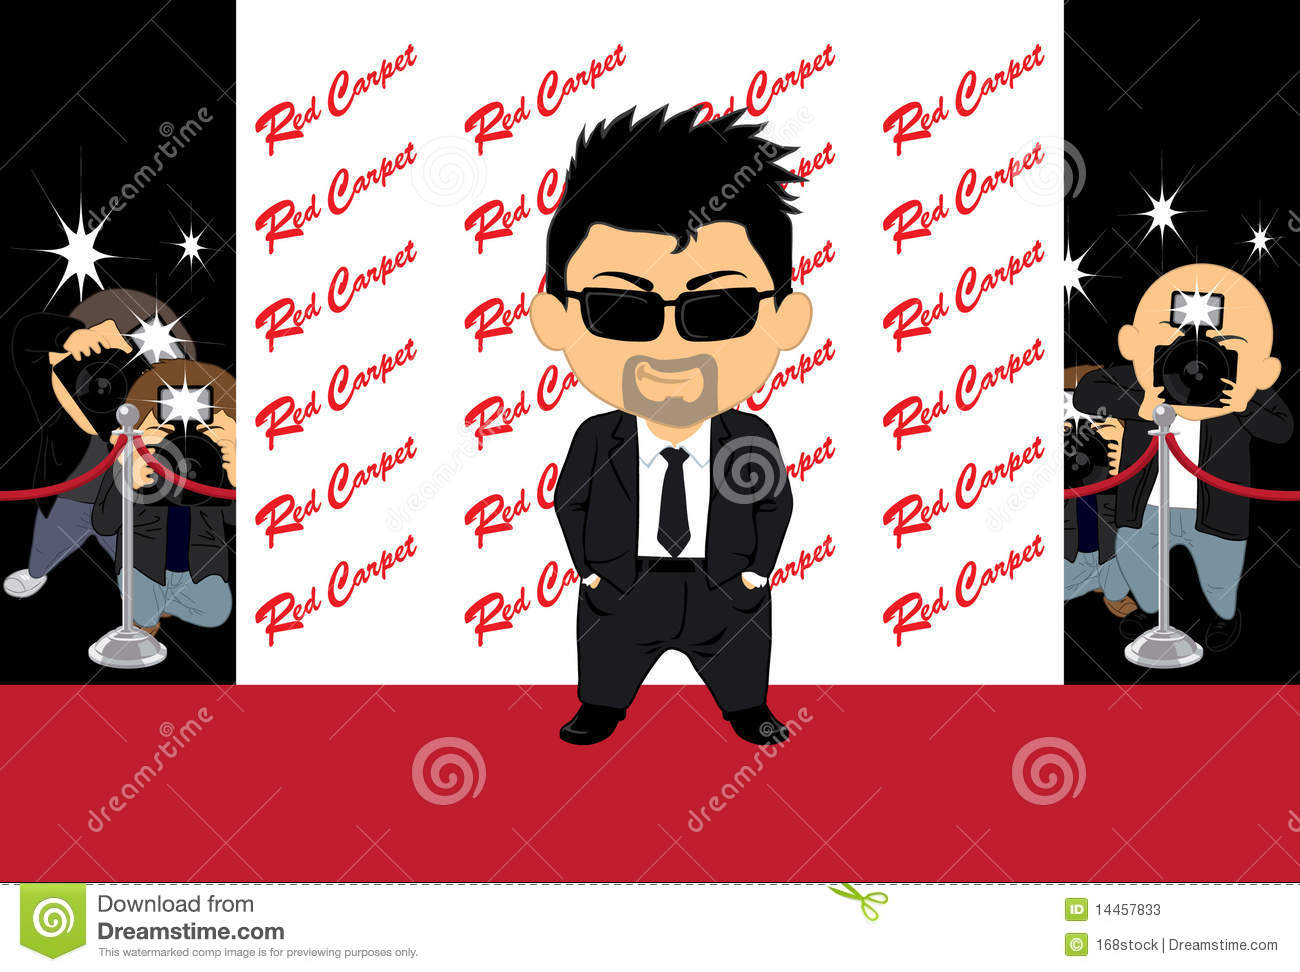 Actor clipart hollywood Clipart Actor Panda actor%20clipart Free